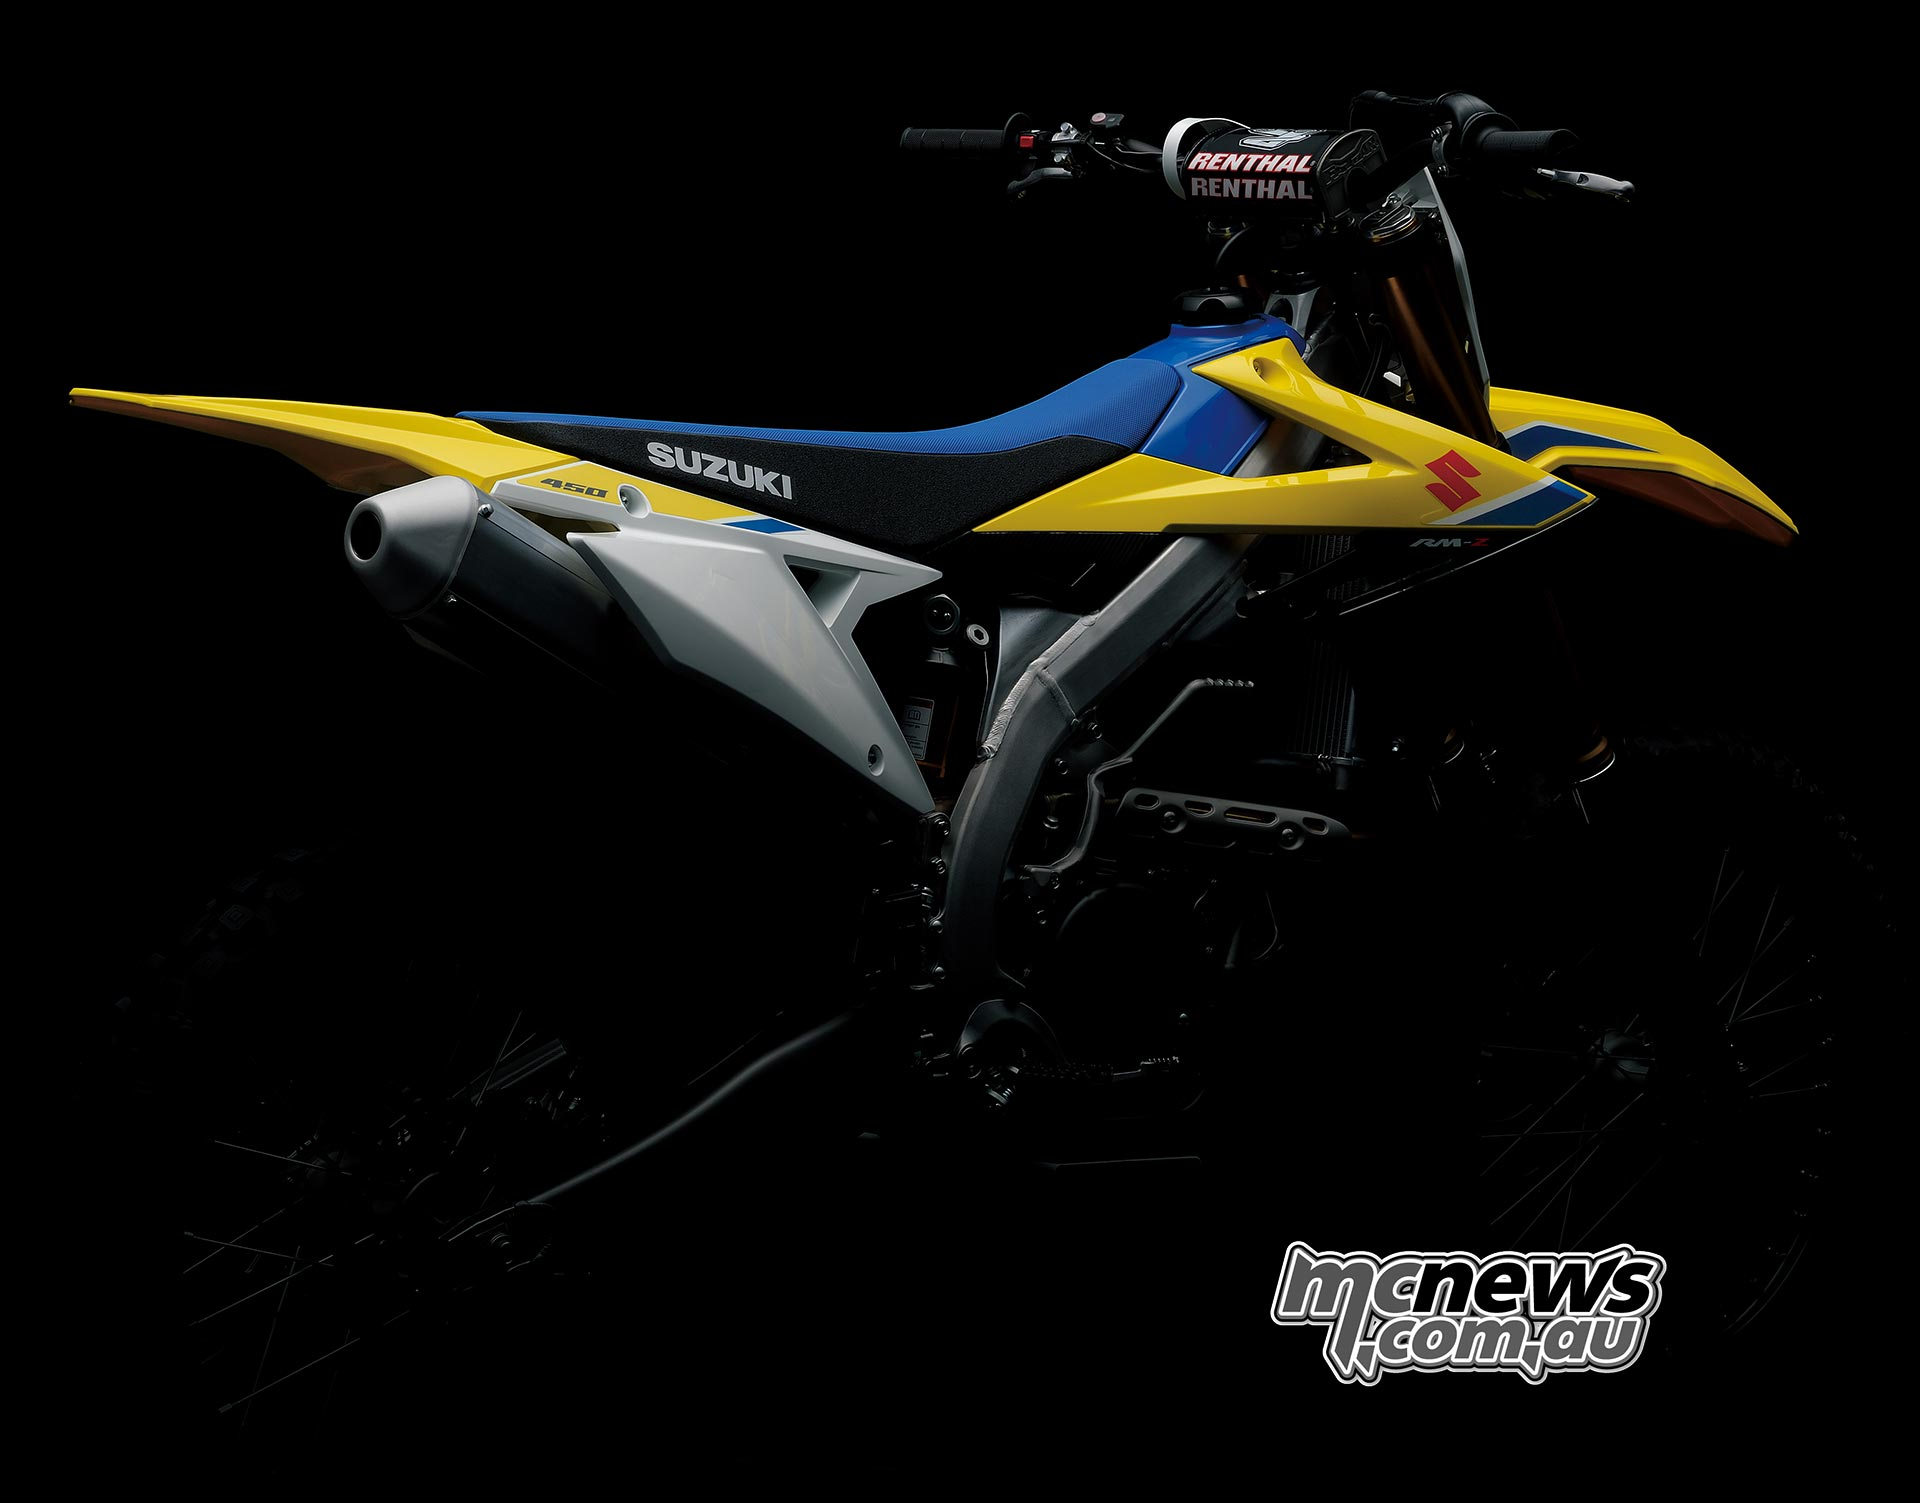 Still distinctly Suzuki the new RM-Z450 features with new team graphics and logos,